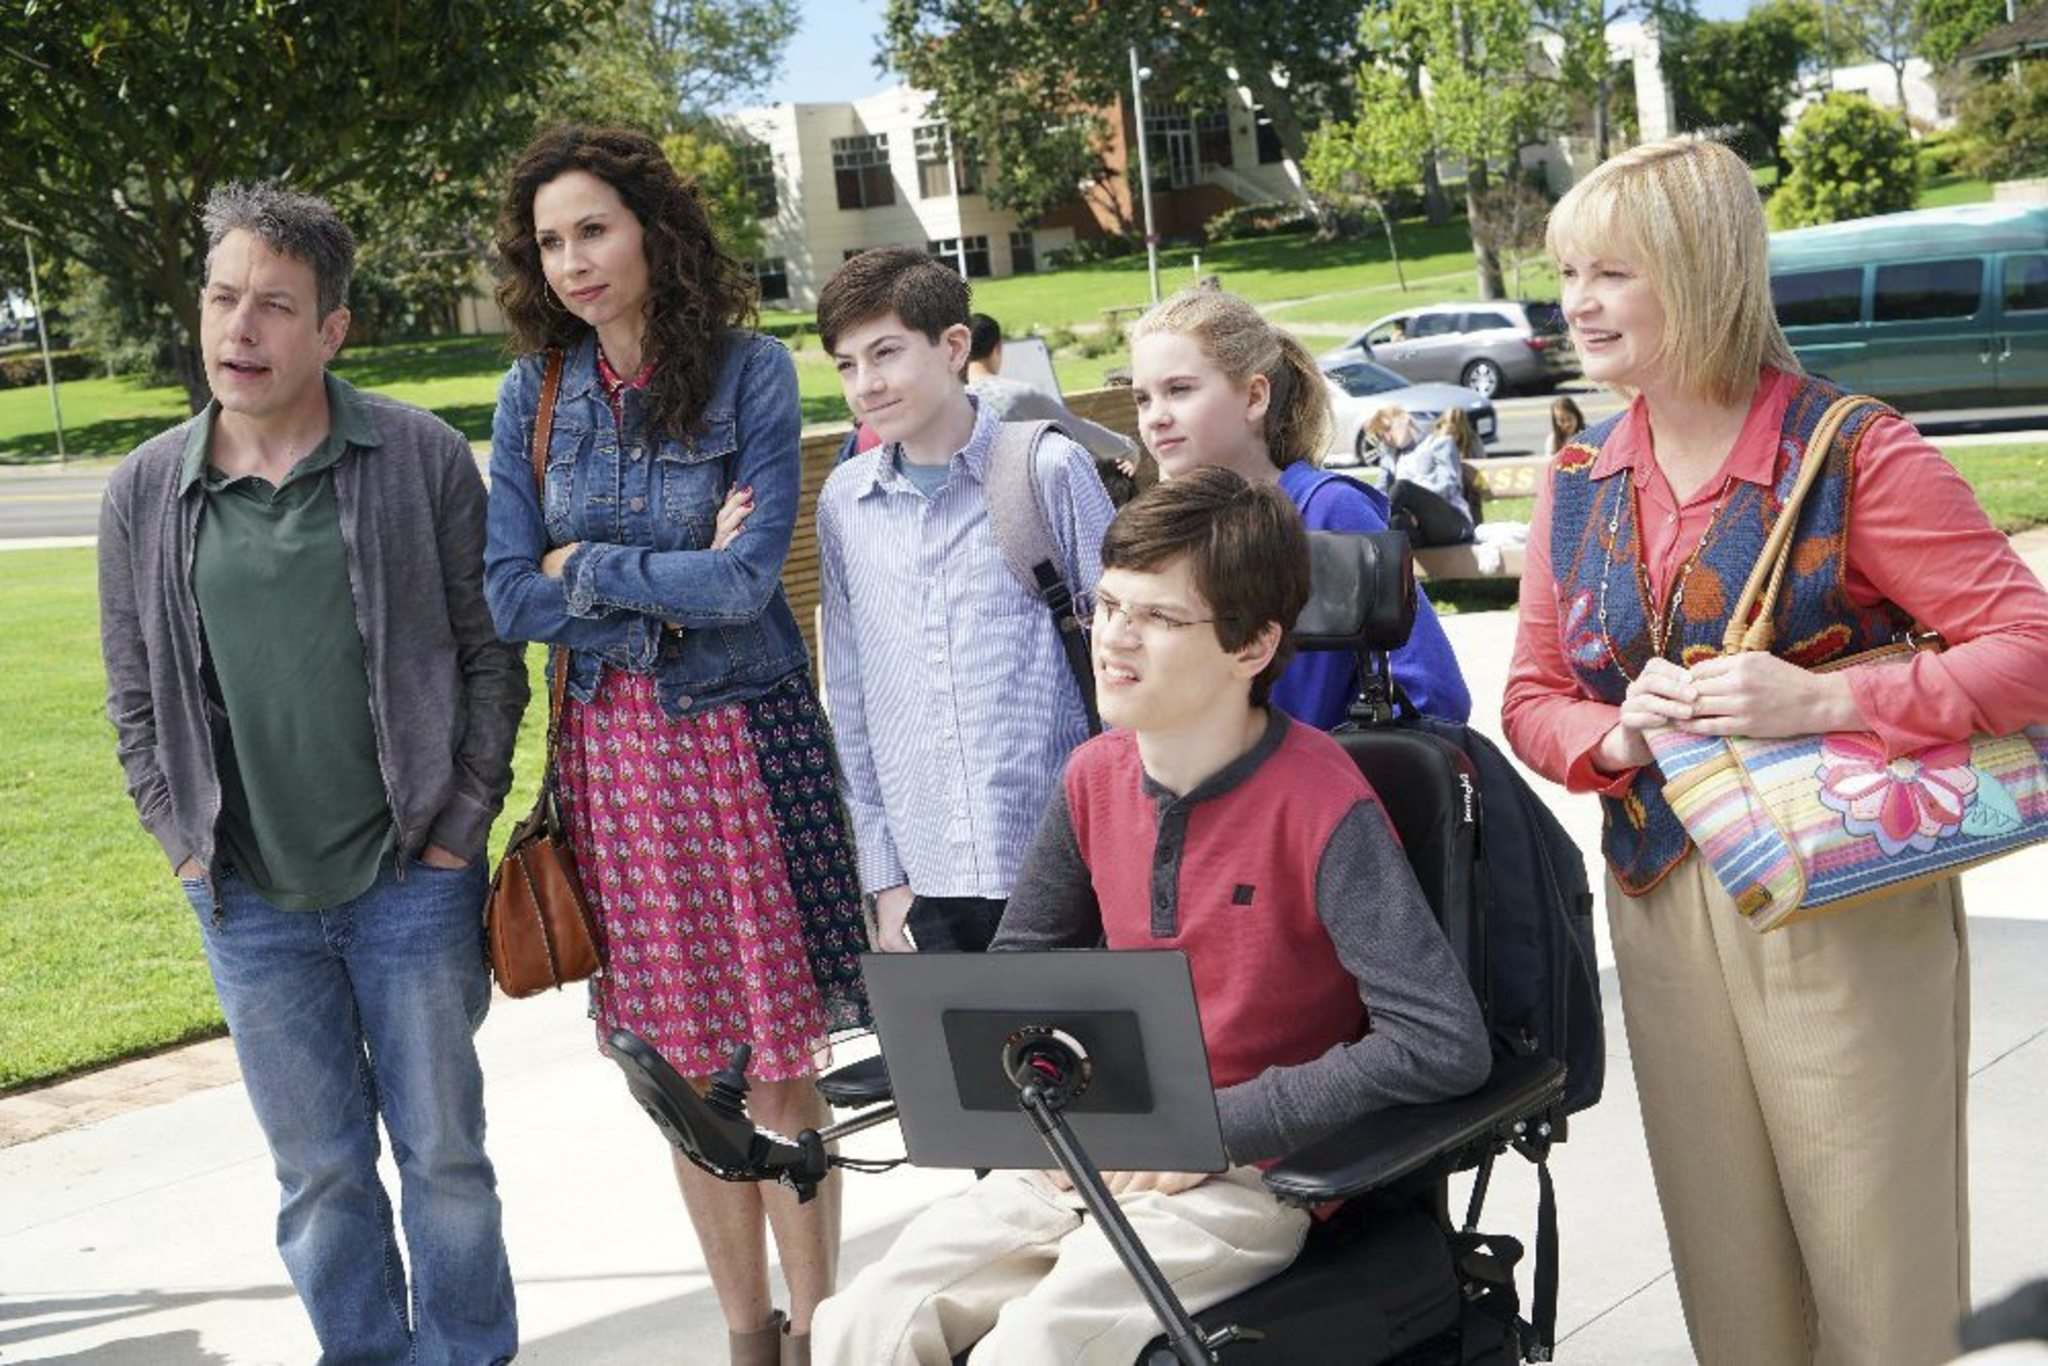 Adam Taylor / ABC</p><p>(From left): John Ross Bowie, Minnie Driver, Mason Cook, Kyla Kenedy, Micah Fowler and Dina Spybey-Waters star in Speechless.</p></p>